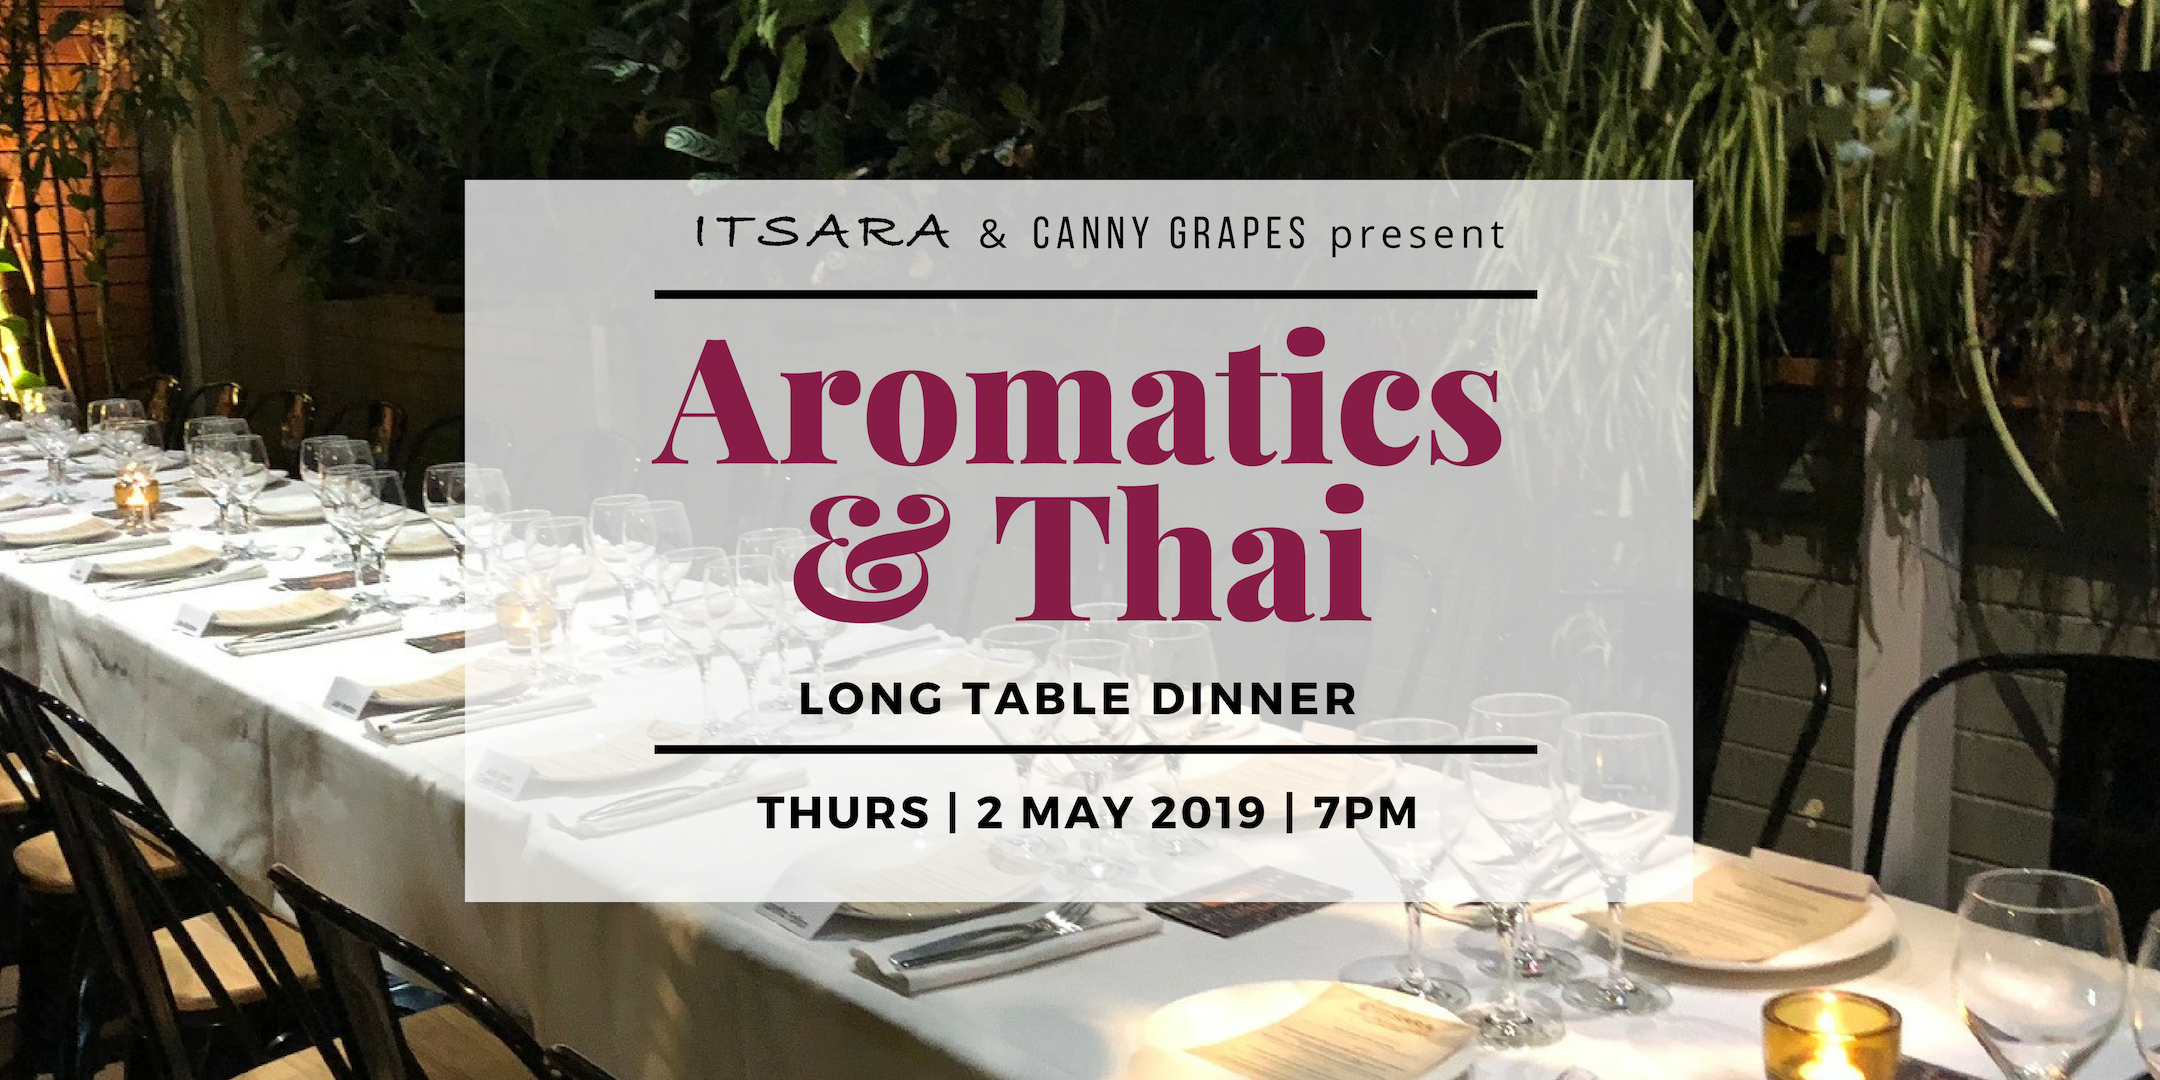 Aromatics & Thai Long Table Dinner with Anja Lewis of Canny Grapes at Itsara Nedlands Perth